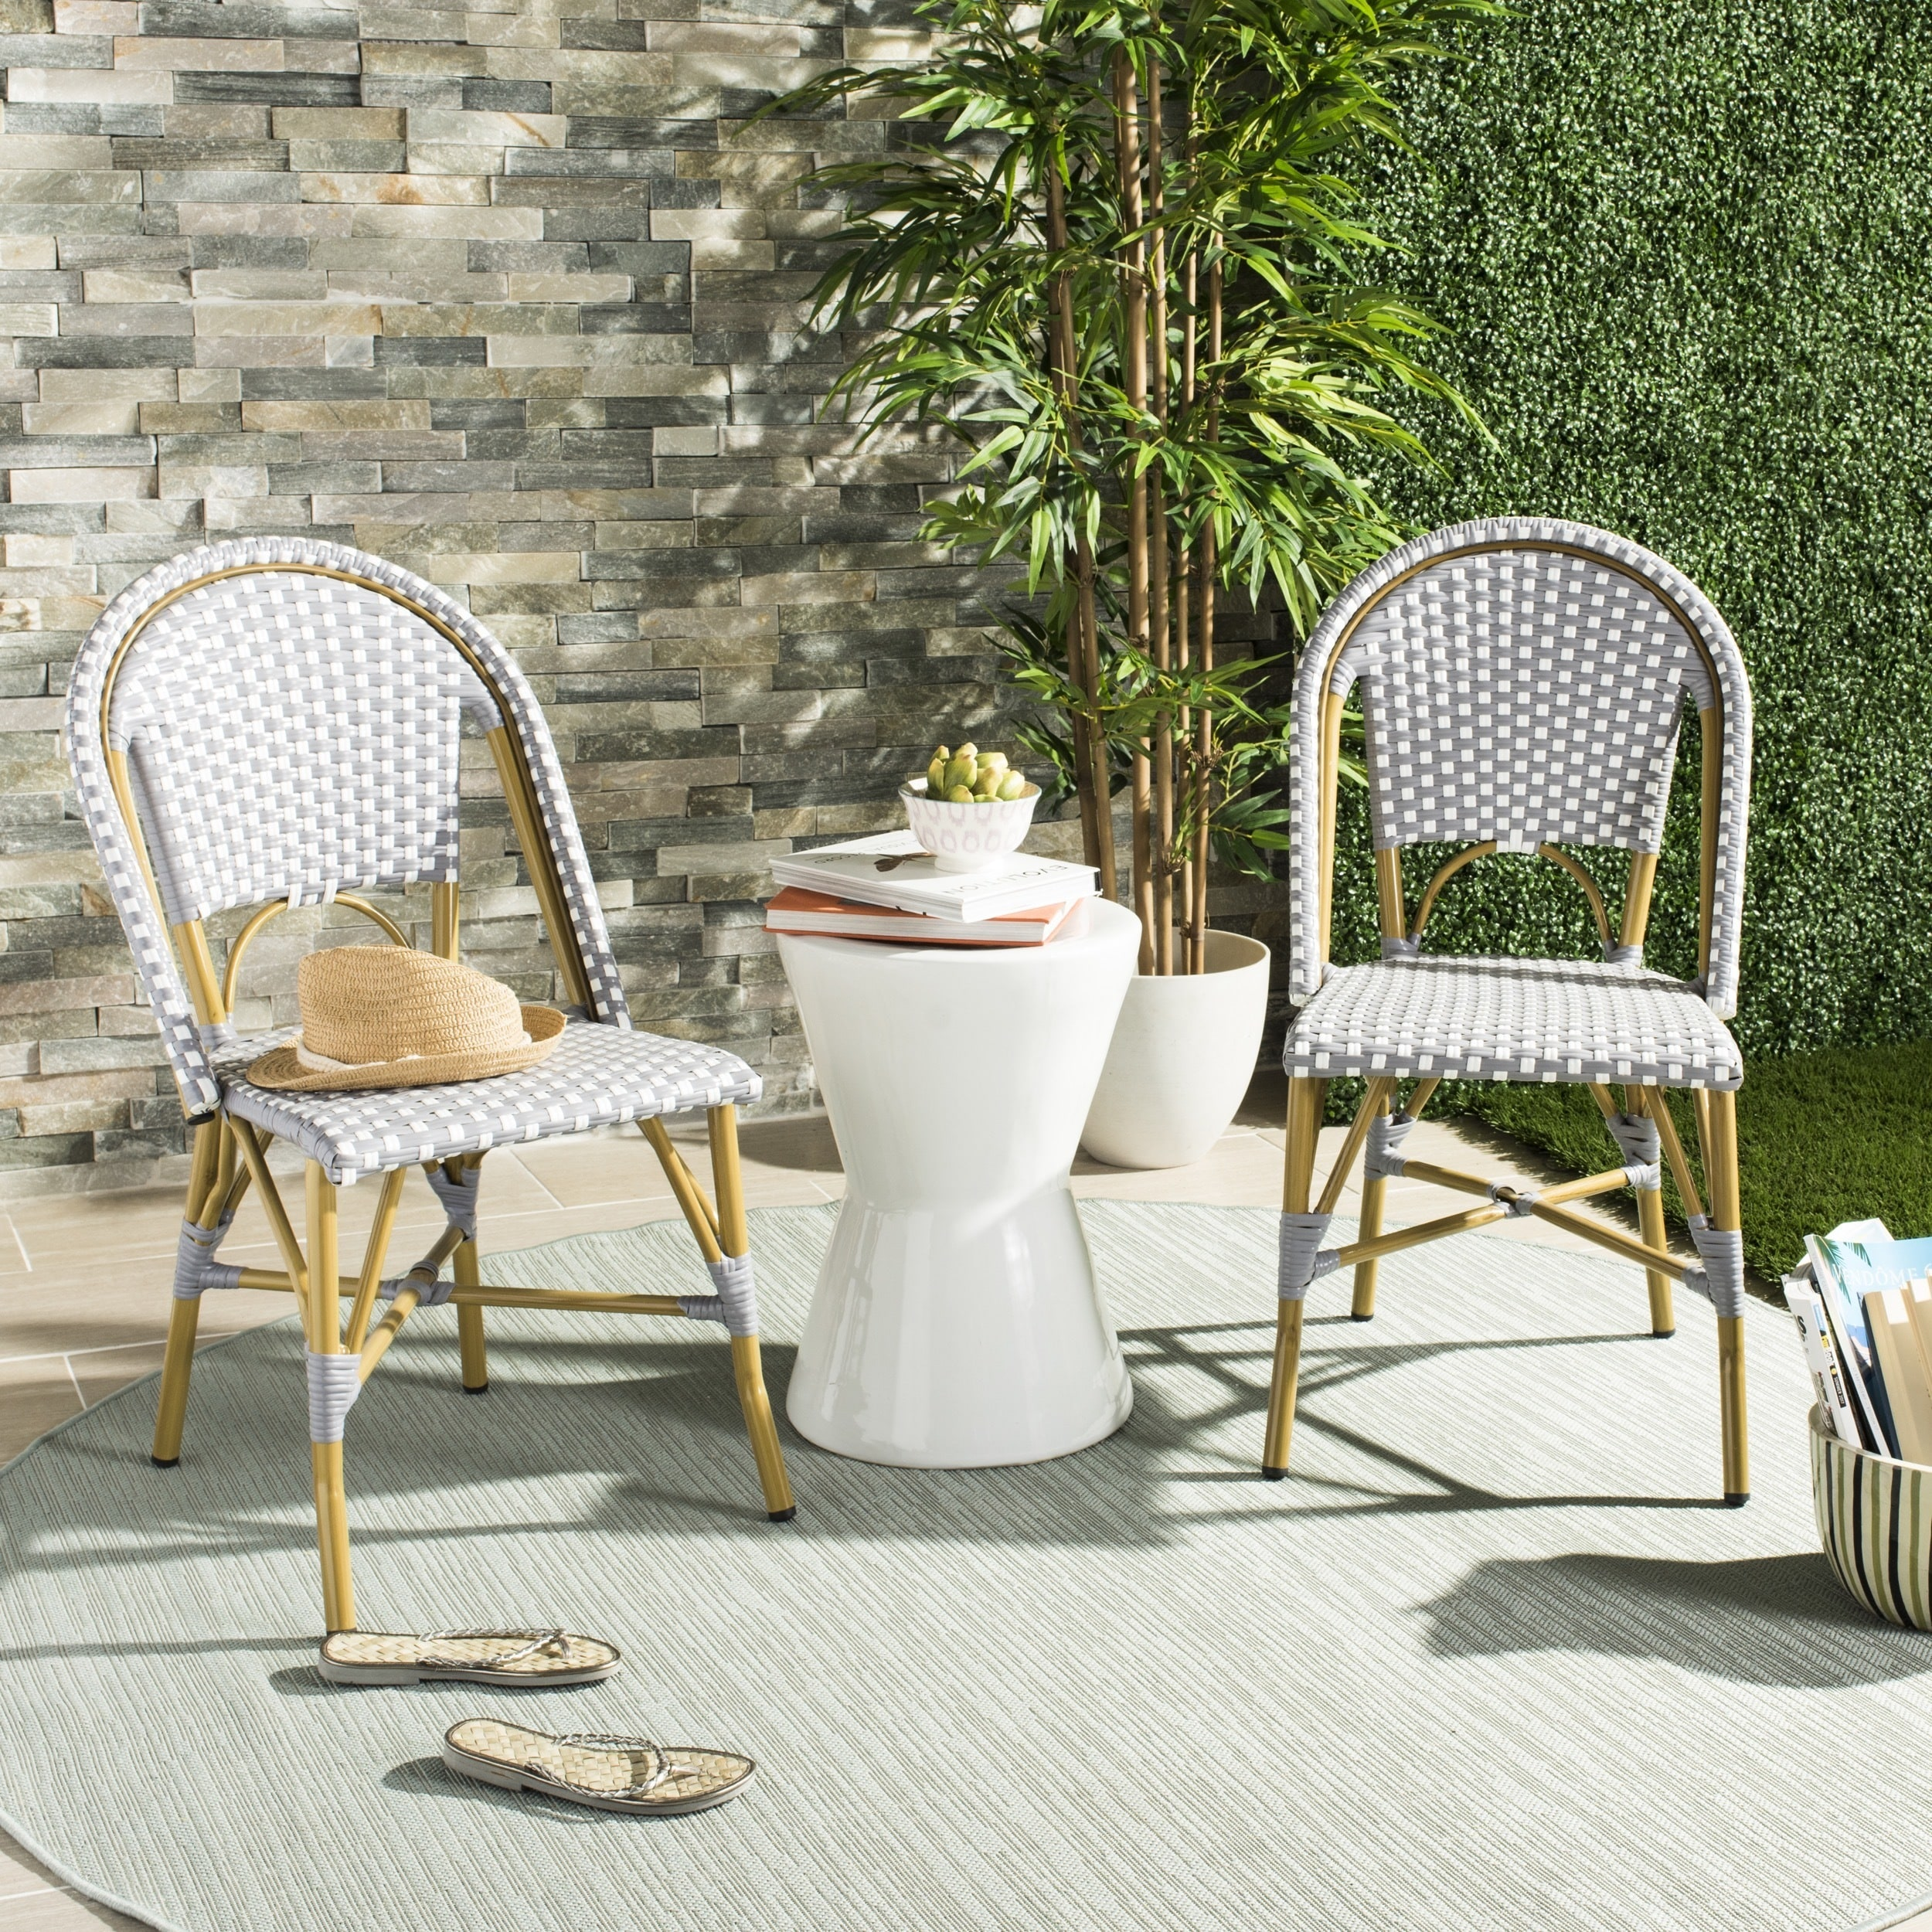 Outdoor French Bistro Chairs Safavieh Salcha Indoor Outdoor French Bistro Grey White Stacking Side Chair Set Of 2